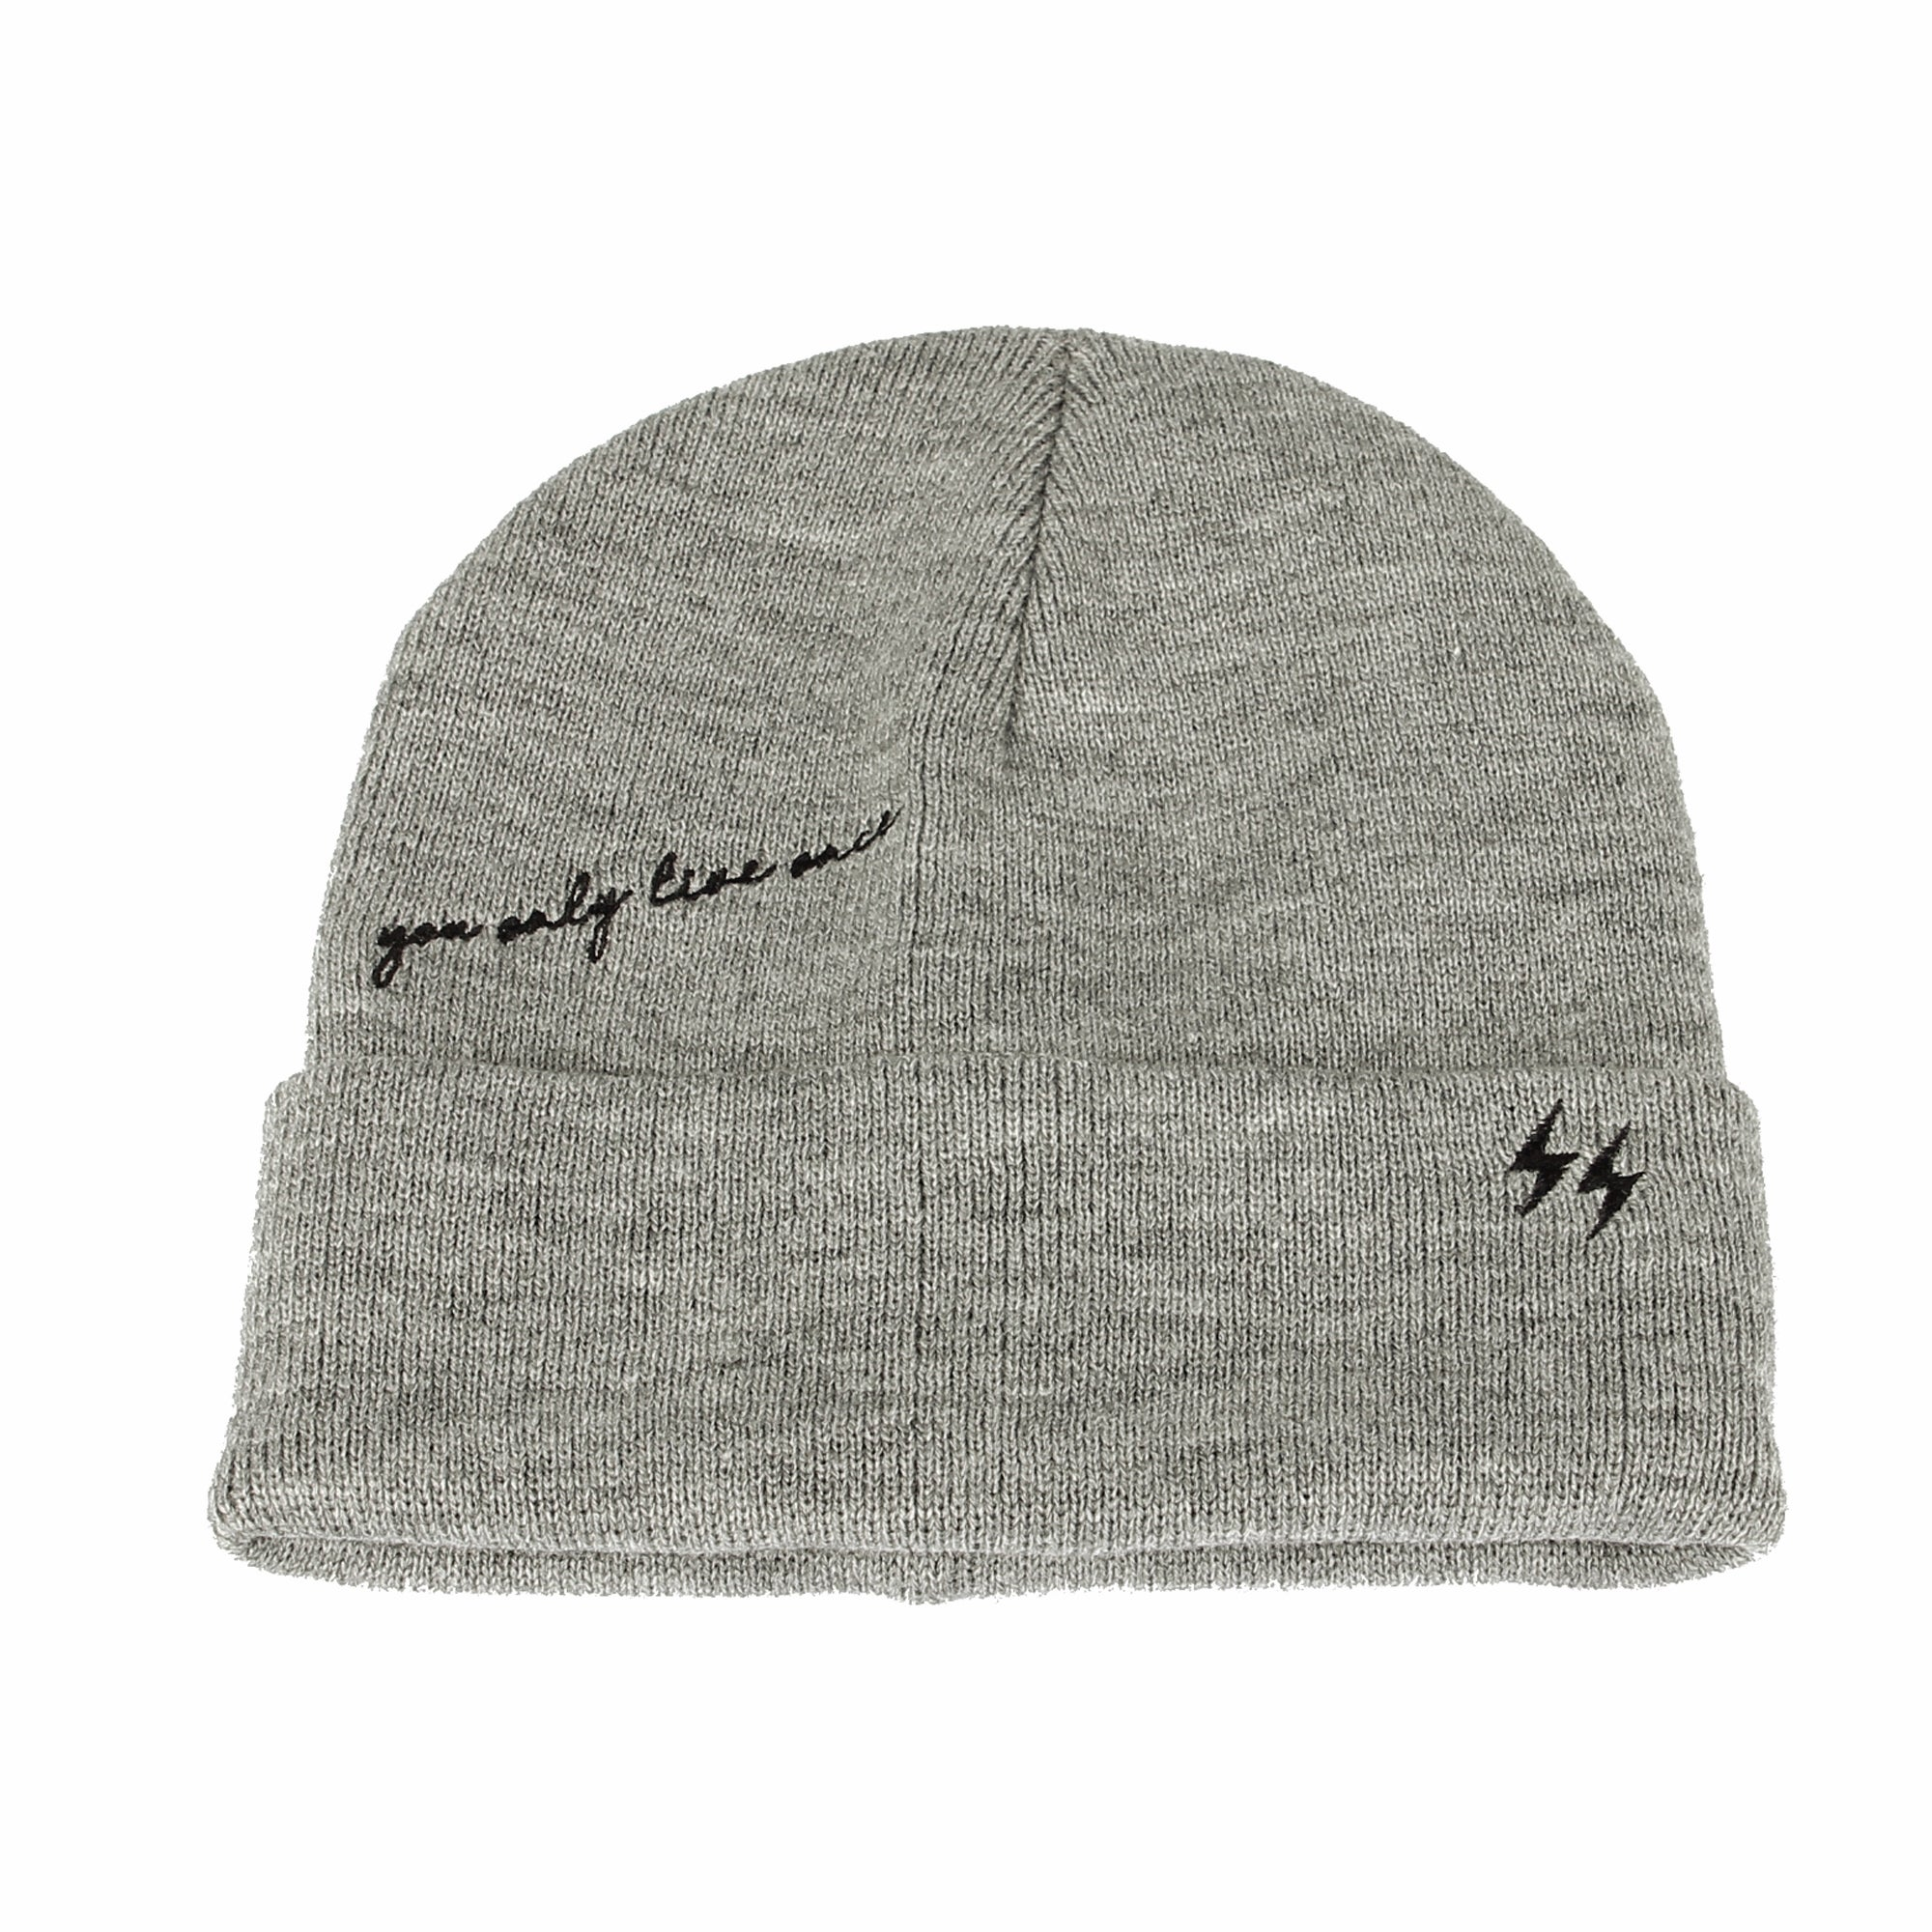 Knitted Beanie Hat You Only Live Once Watch Cap